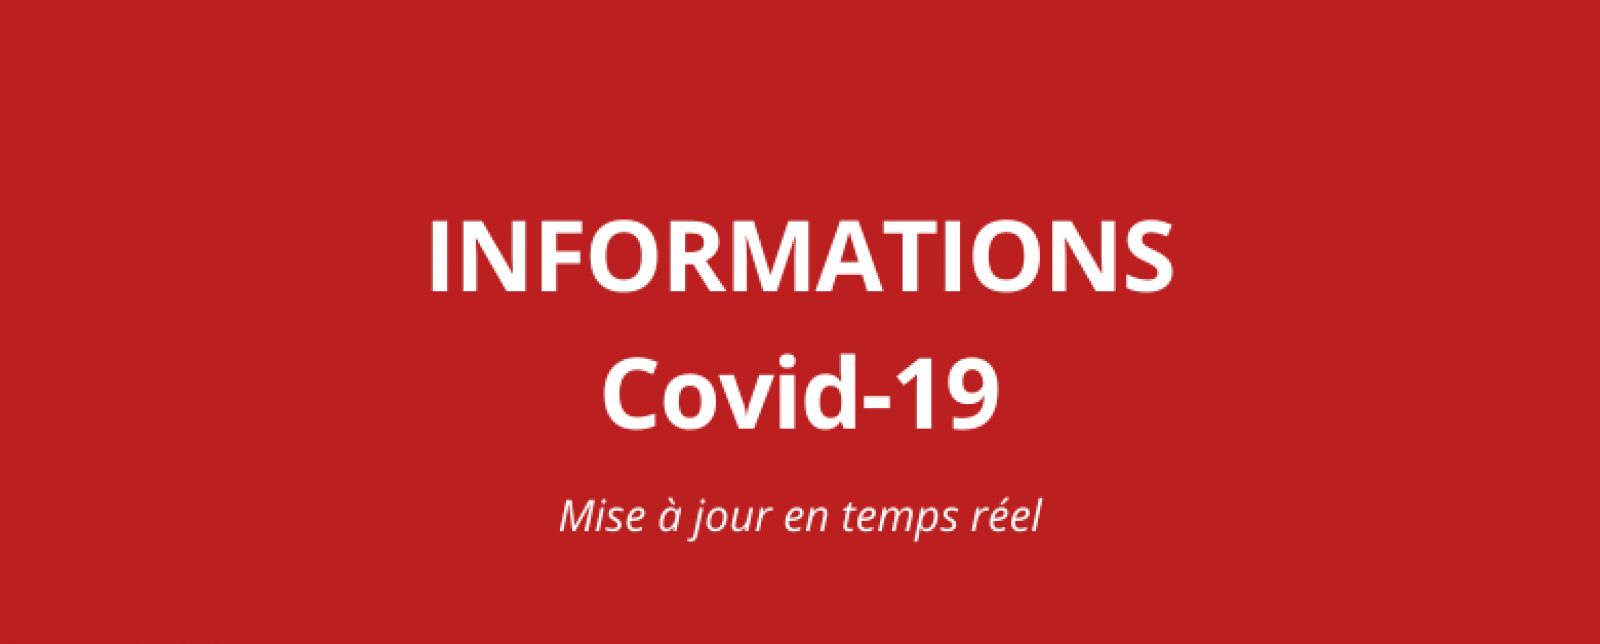 Informations - Covid-19